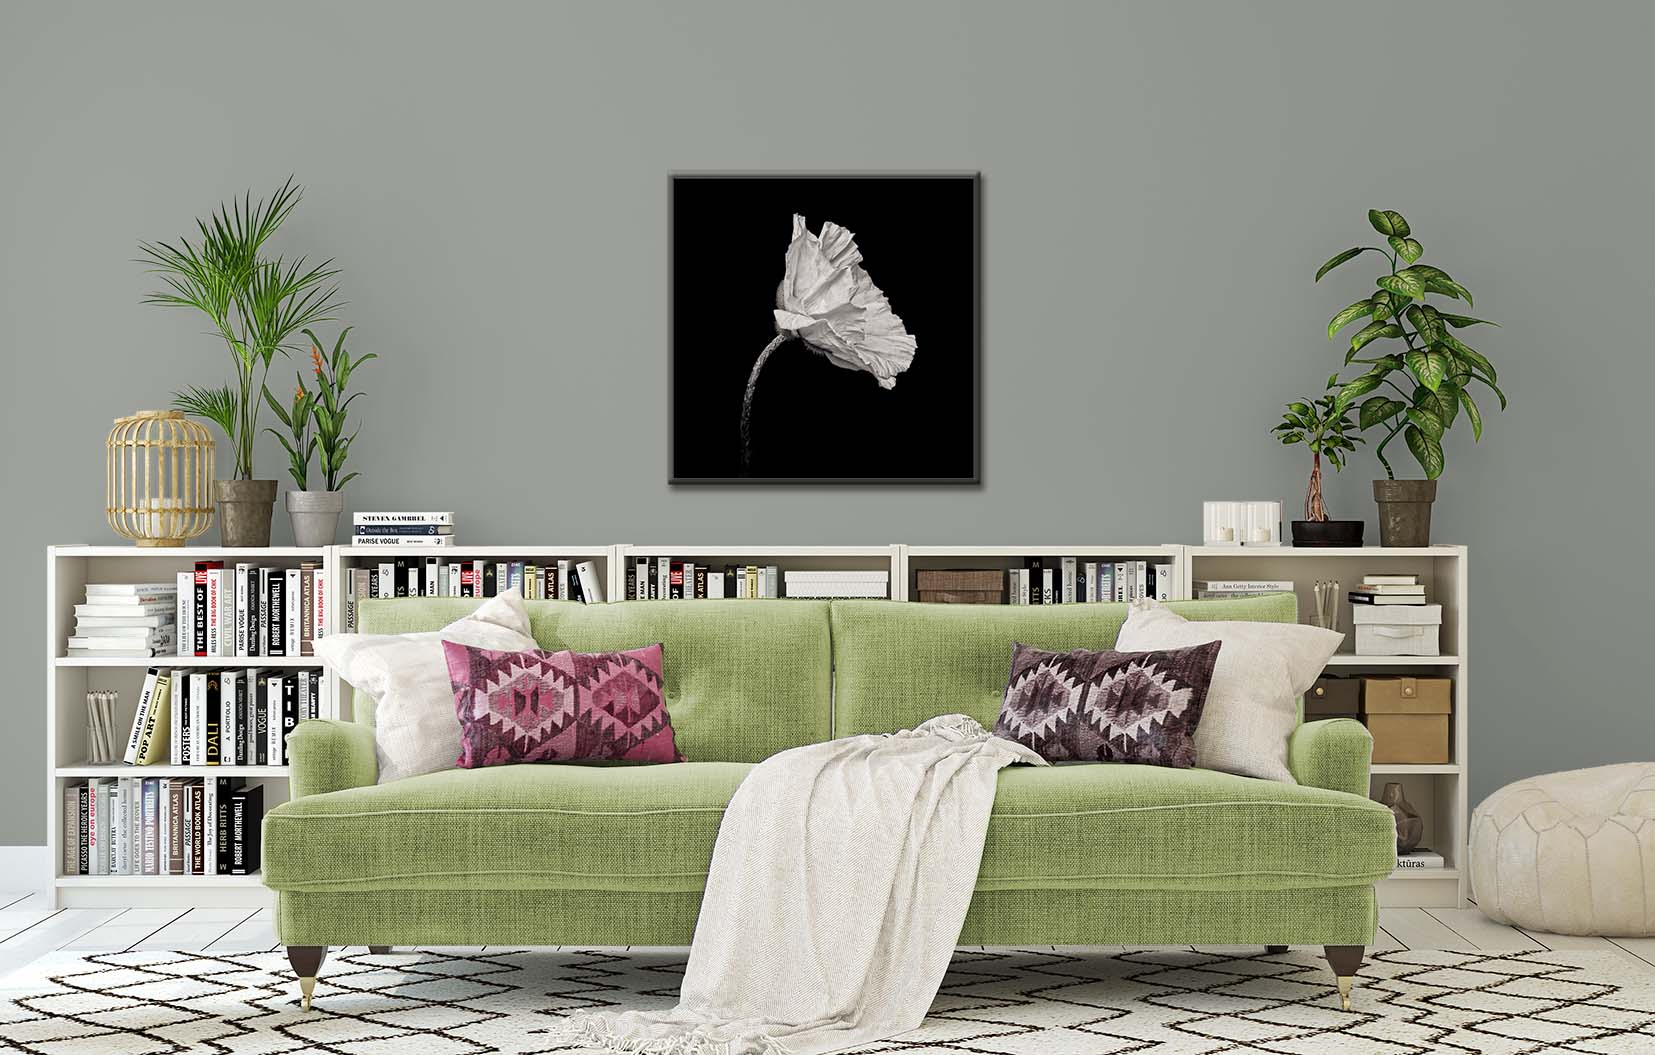 A limited edition black and white photographic print of a poppy shown framed and on the wall.